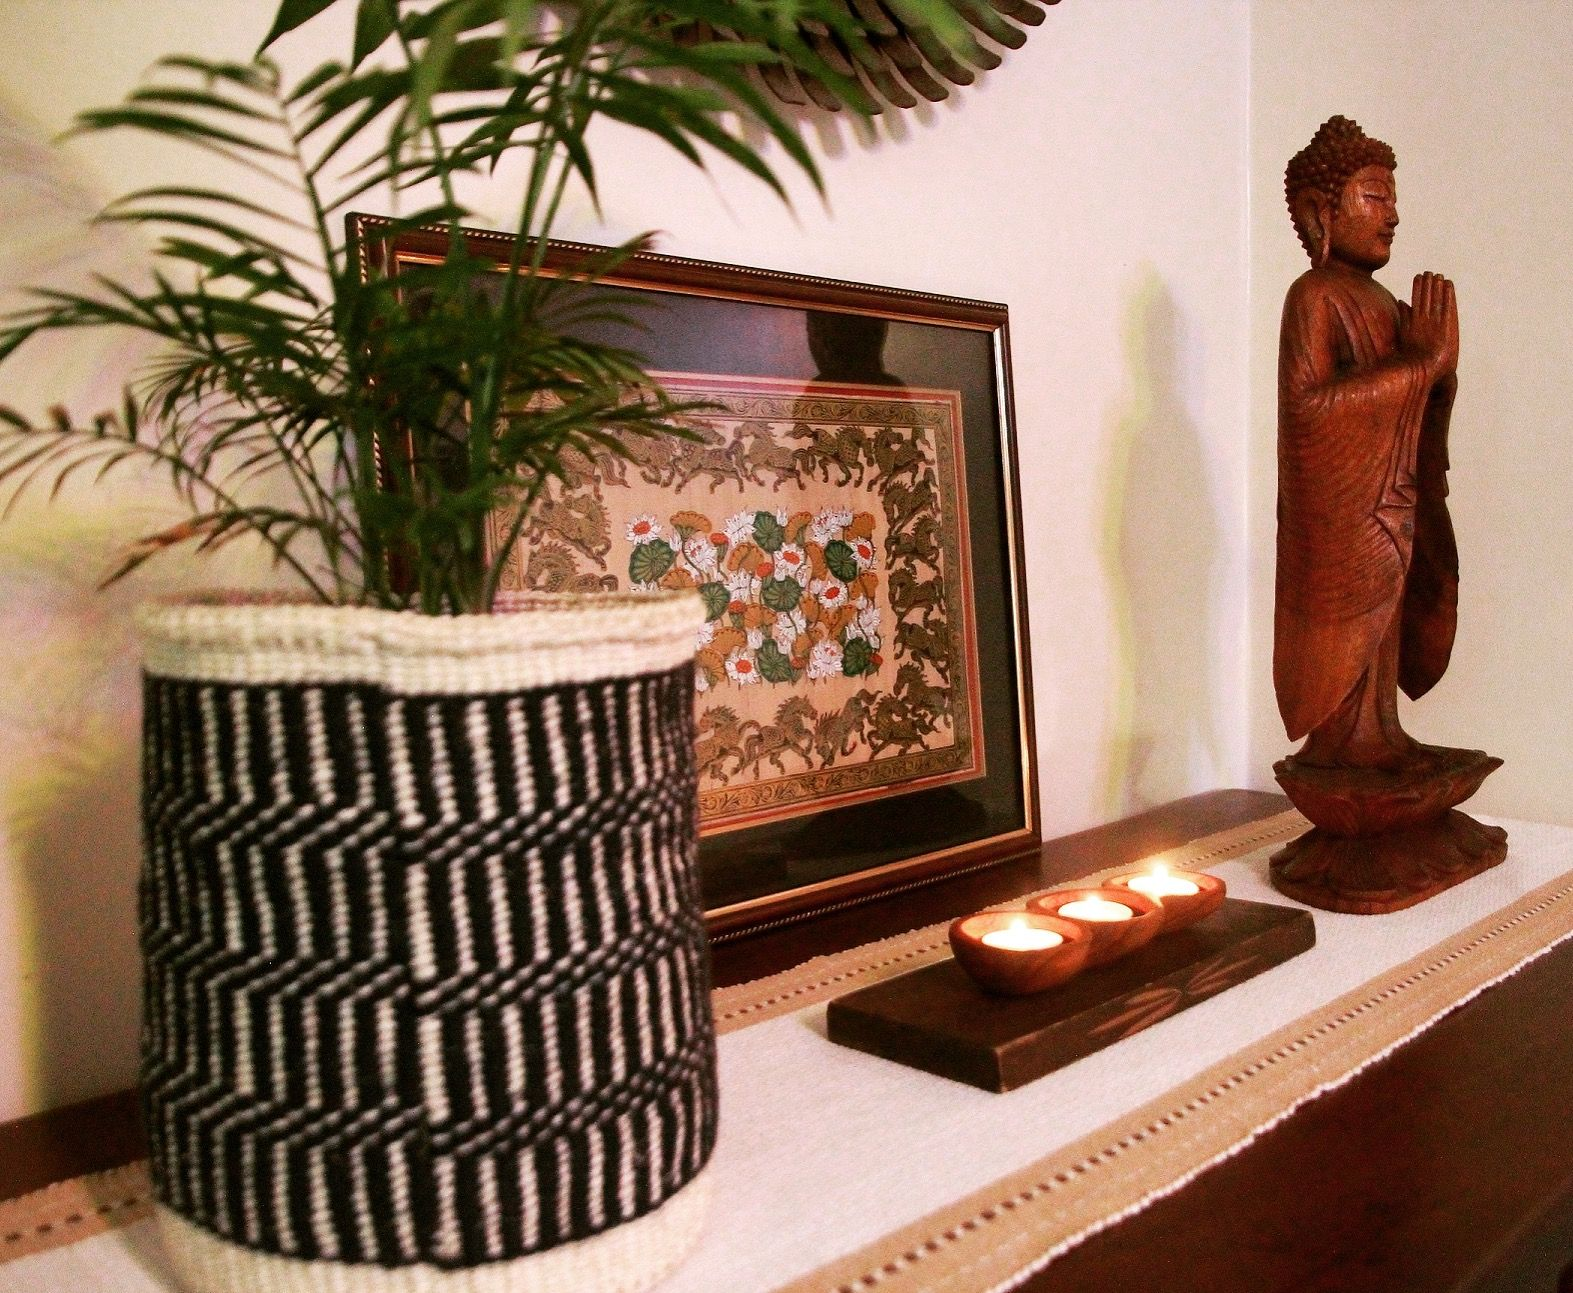 Zen Decor Ideas Zen Corner Of Our Home Balinese Buddha Indian Pata